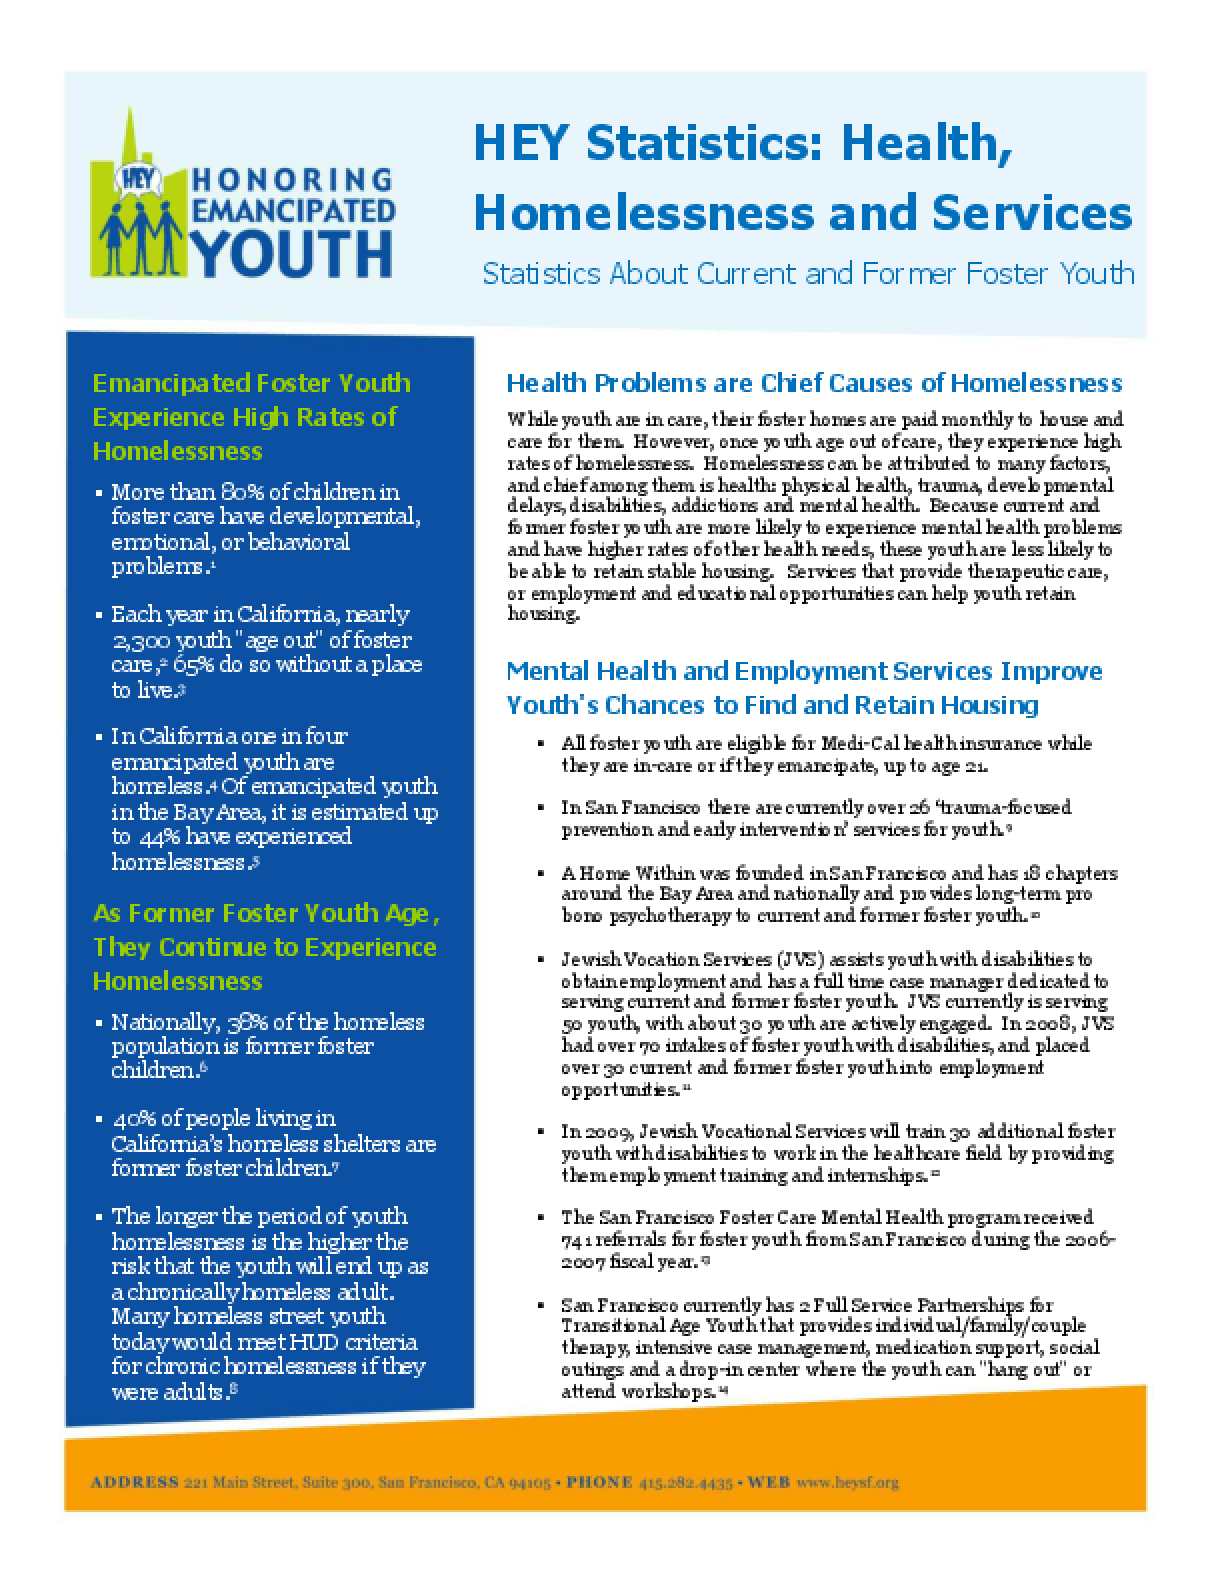 HEY Statistics: Health, Homelessness and Services